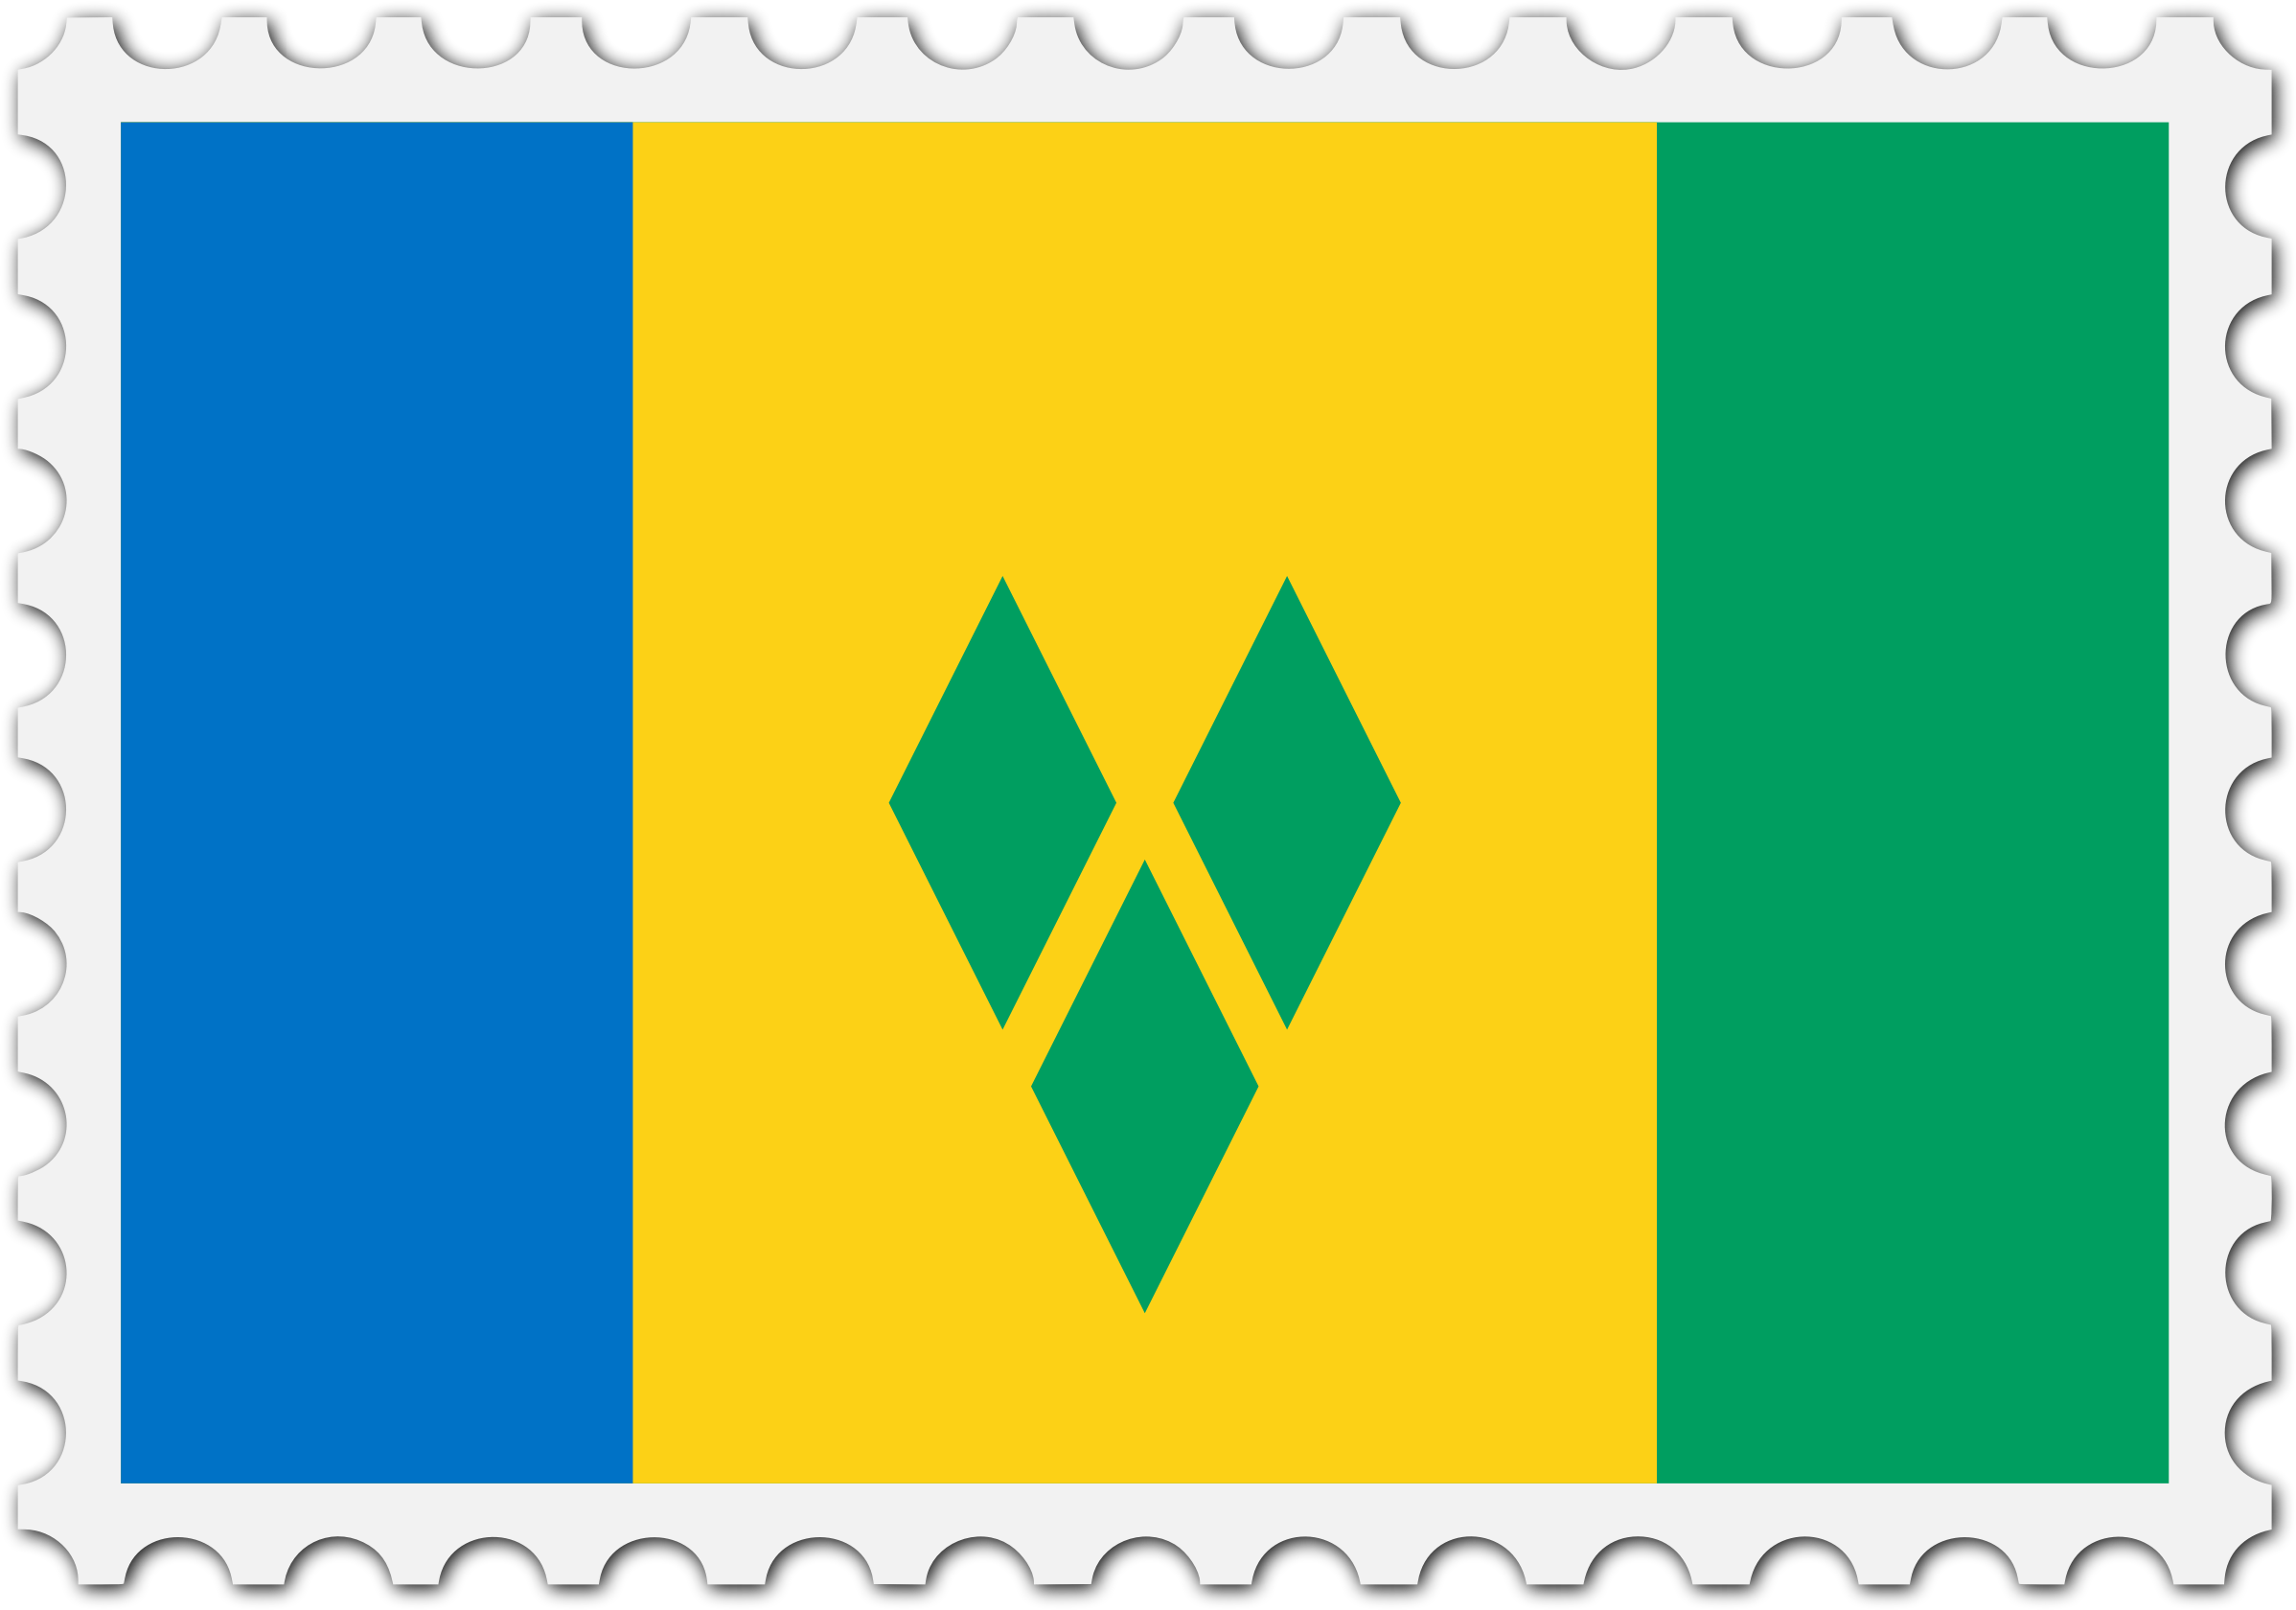 Saint Vincent and the Grenadines flag stamp by Firkin